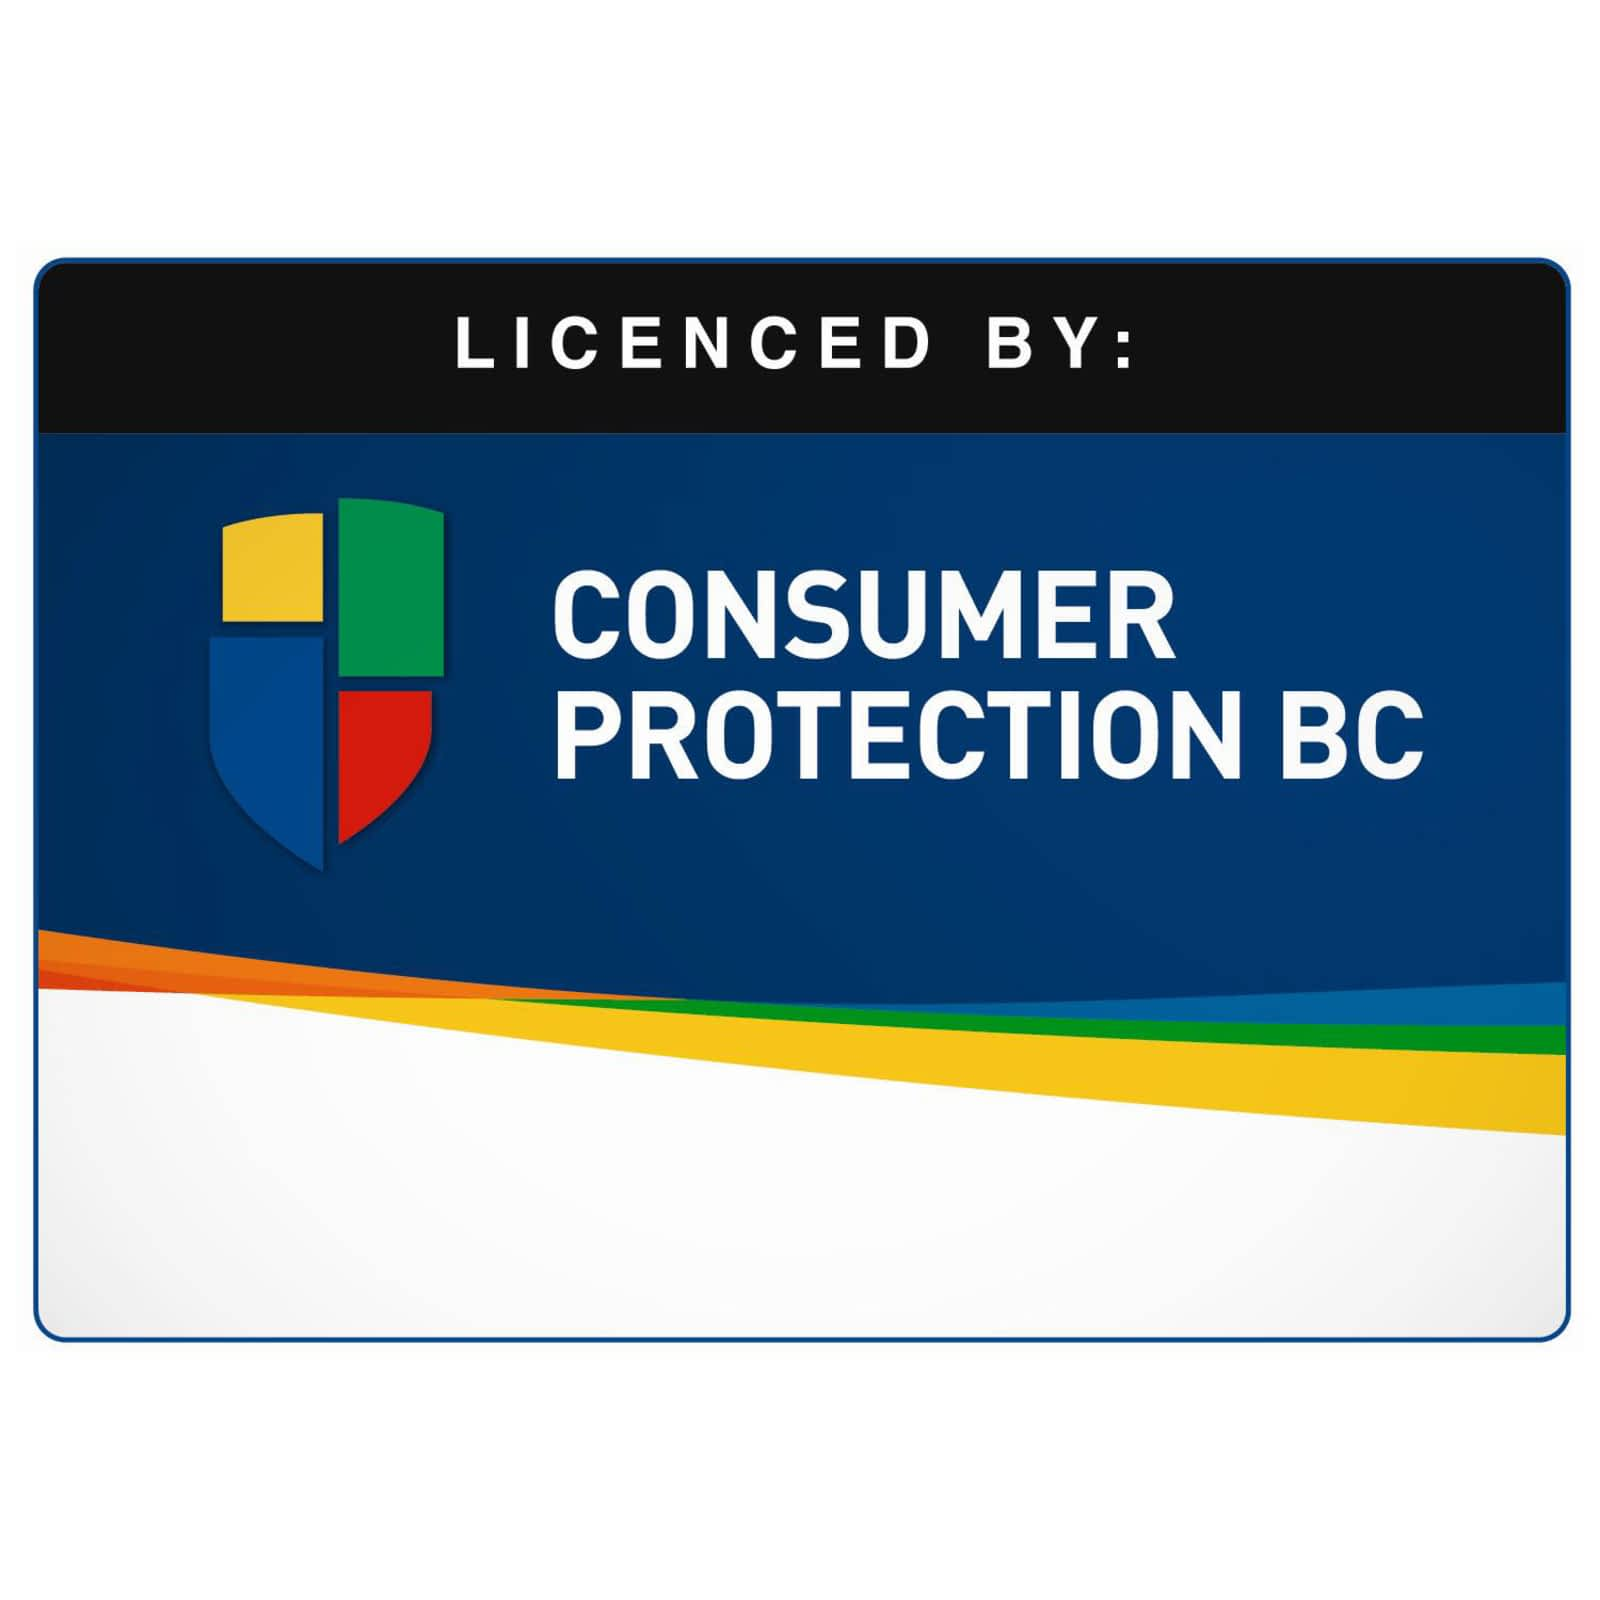 Consumer Protection BC - Home Inpector